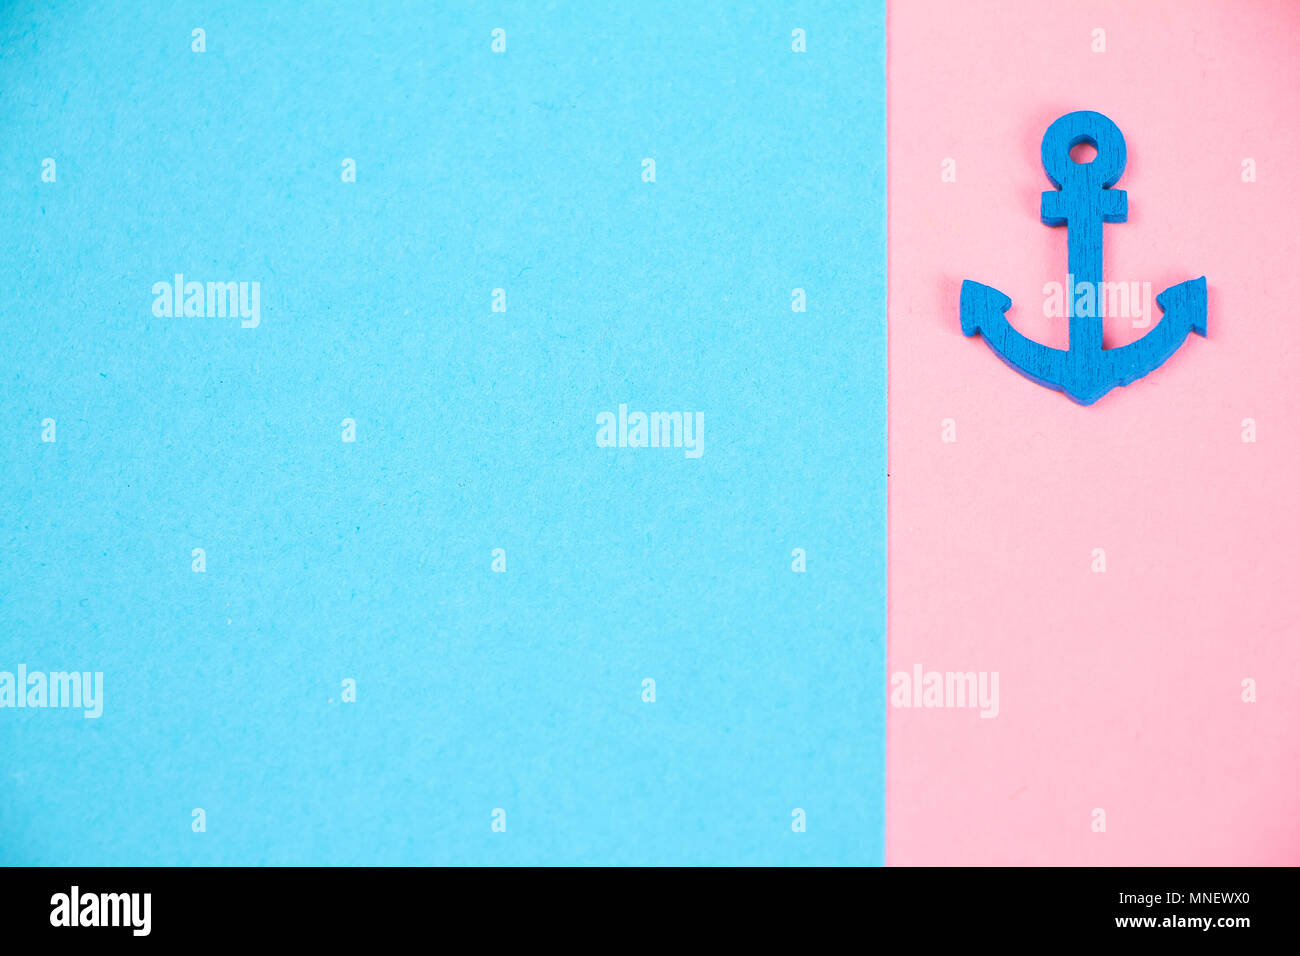 Decorative minimalistic card in pink and neon fashionable